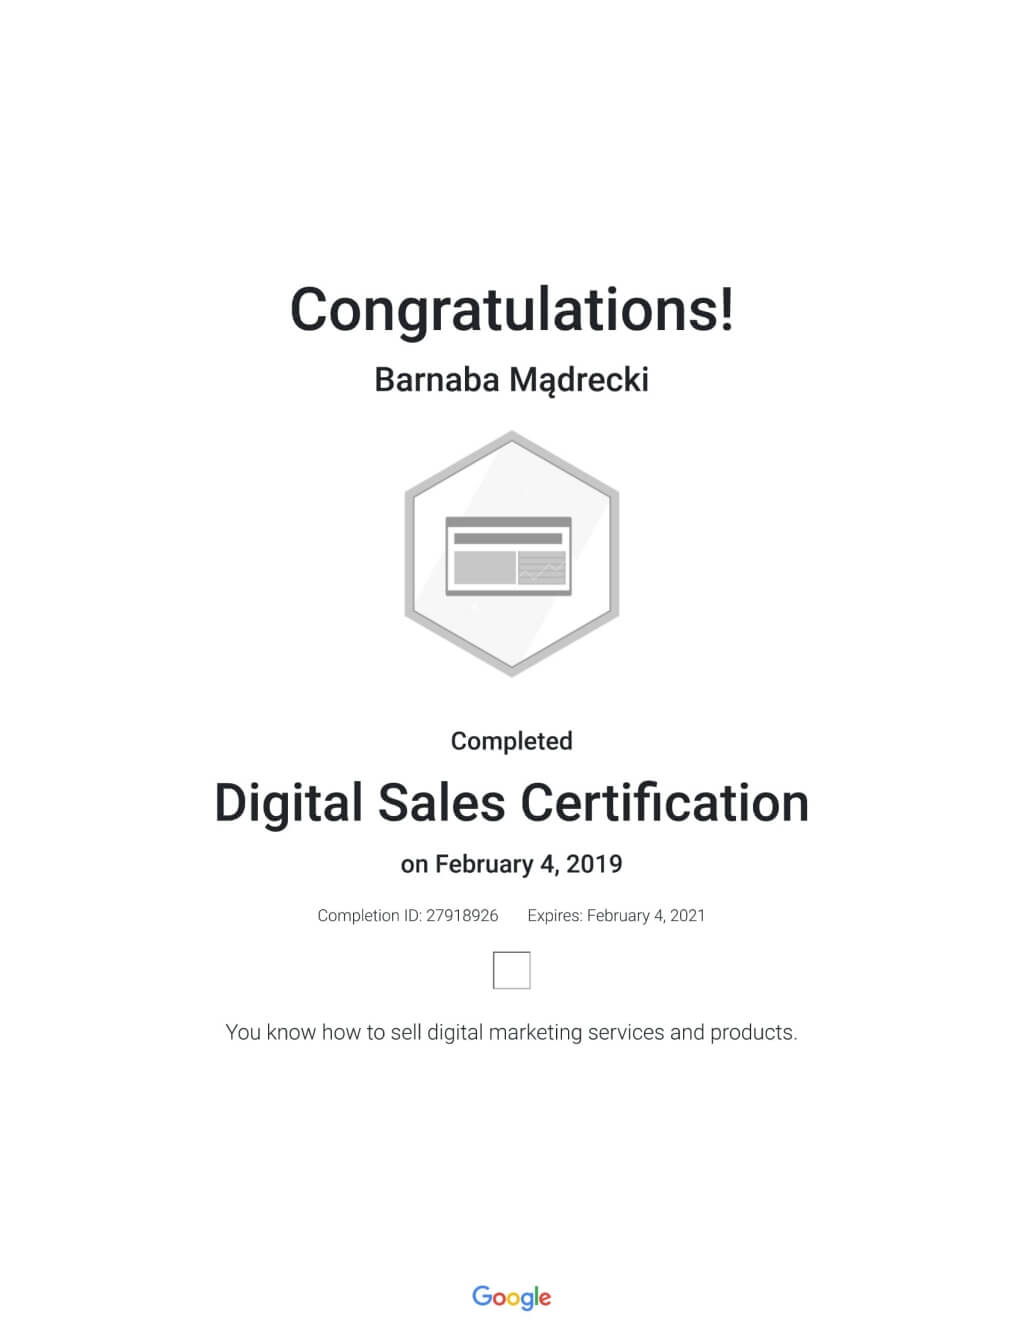 Digital Sales Certitation